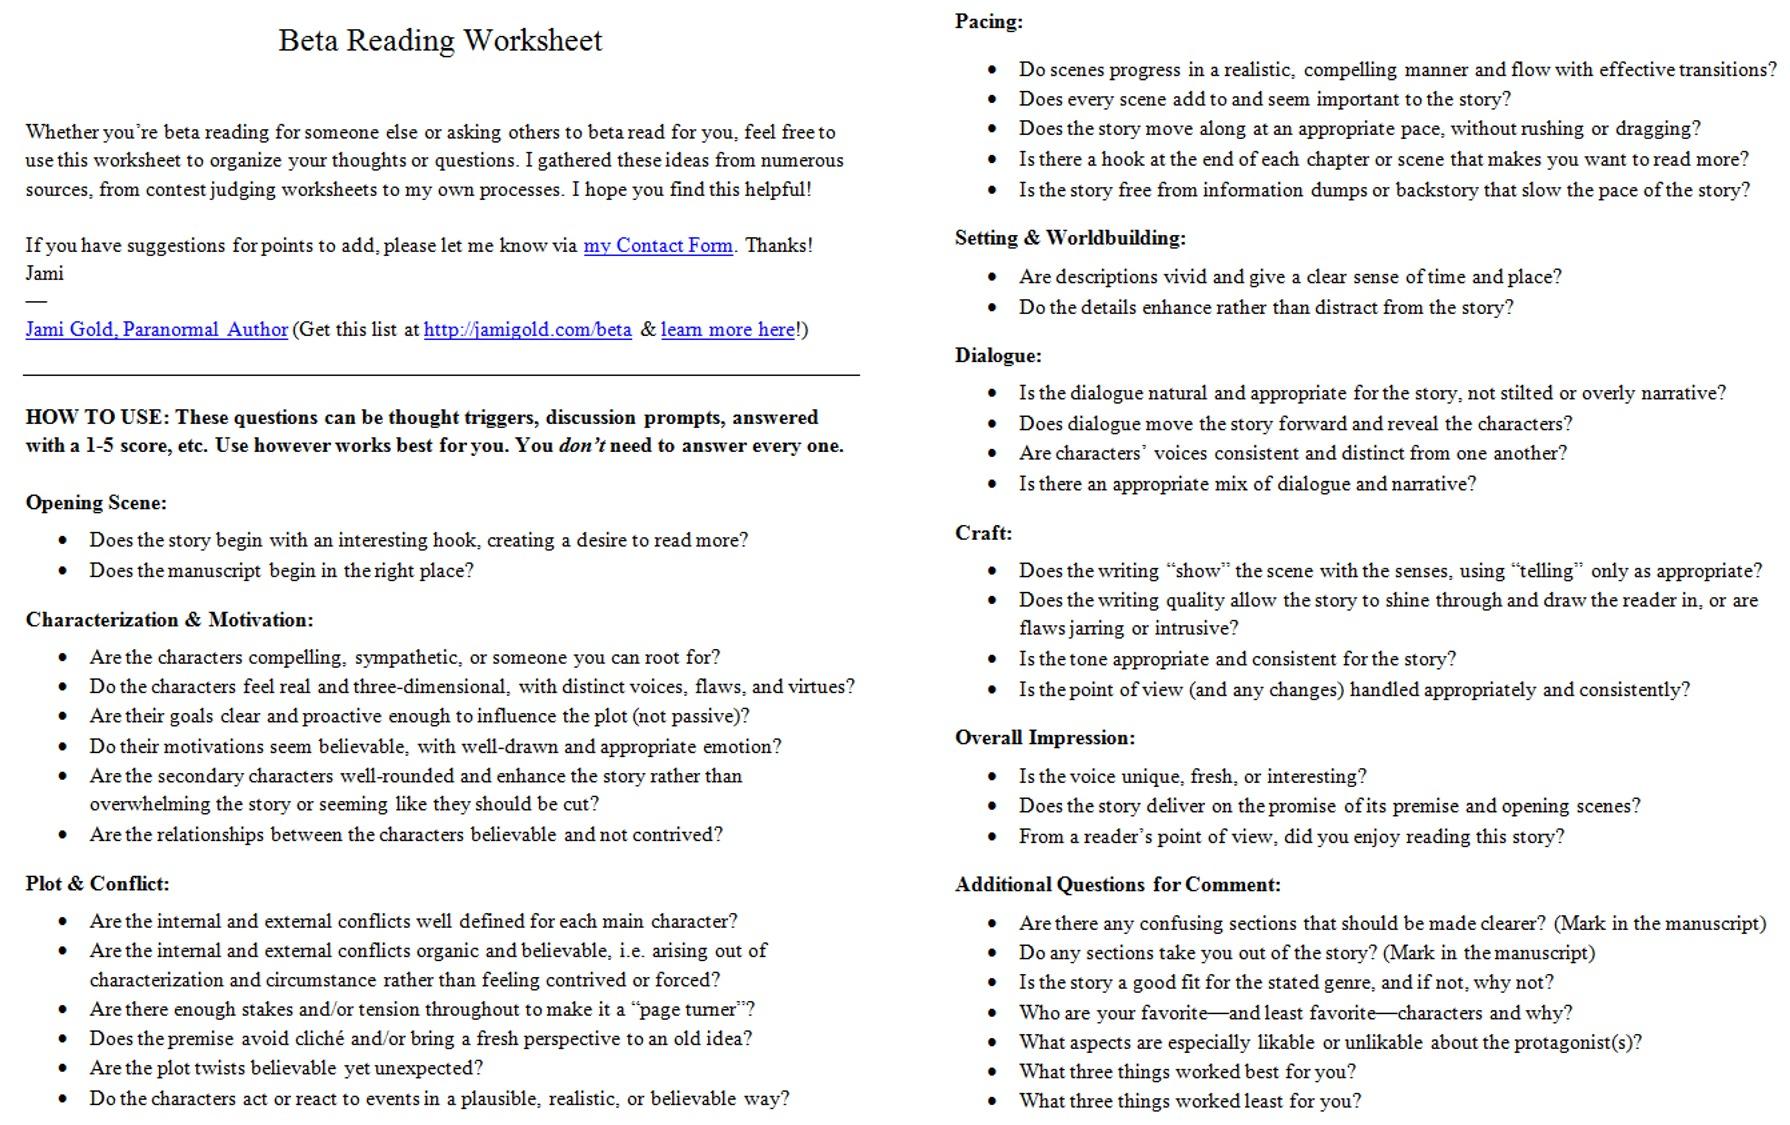 Weirdmailus  Winning Worksheets For Writers  Jami Gold Paranormal Author With Magnificent Screen Shot Of The Twopage Beta Reading Worksheet With Endearing Addition And Subtraction Worksheets Without Regrouping Also Tree Ring Worksheet In Addition Trig Worksheets With Answers And At Family Worksheet As Well As Rotation Transformation Worksheet Additionally Conduction Worksheet From Jamigoldcom With Weirdmailus  Magnificent Worksheets For Writers  Jami Gold Paranormal Author With Endearing Screen Shot Of The Twopage Beta Reading Worksheet And Winning Addition And Subtraction Worksheets Without Regrouping Also Tree Ring Worksheet In Addition Trig Worksheets With Answers From Jamigoldcom